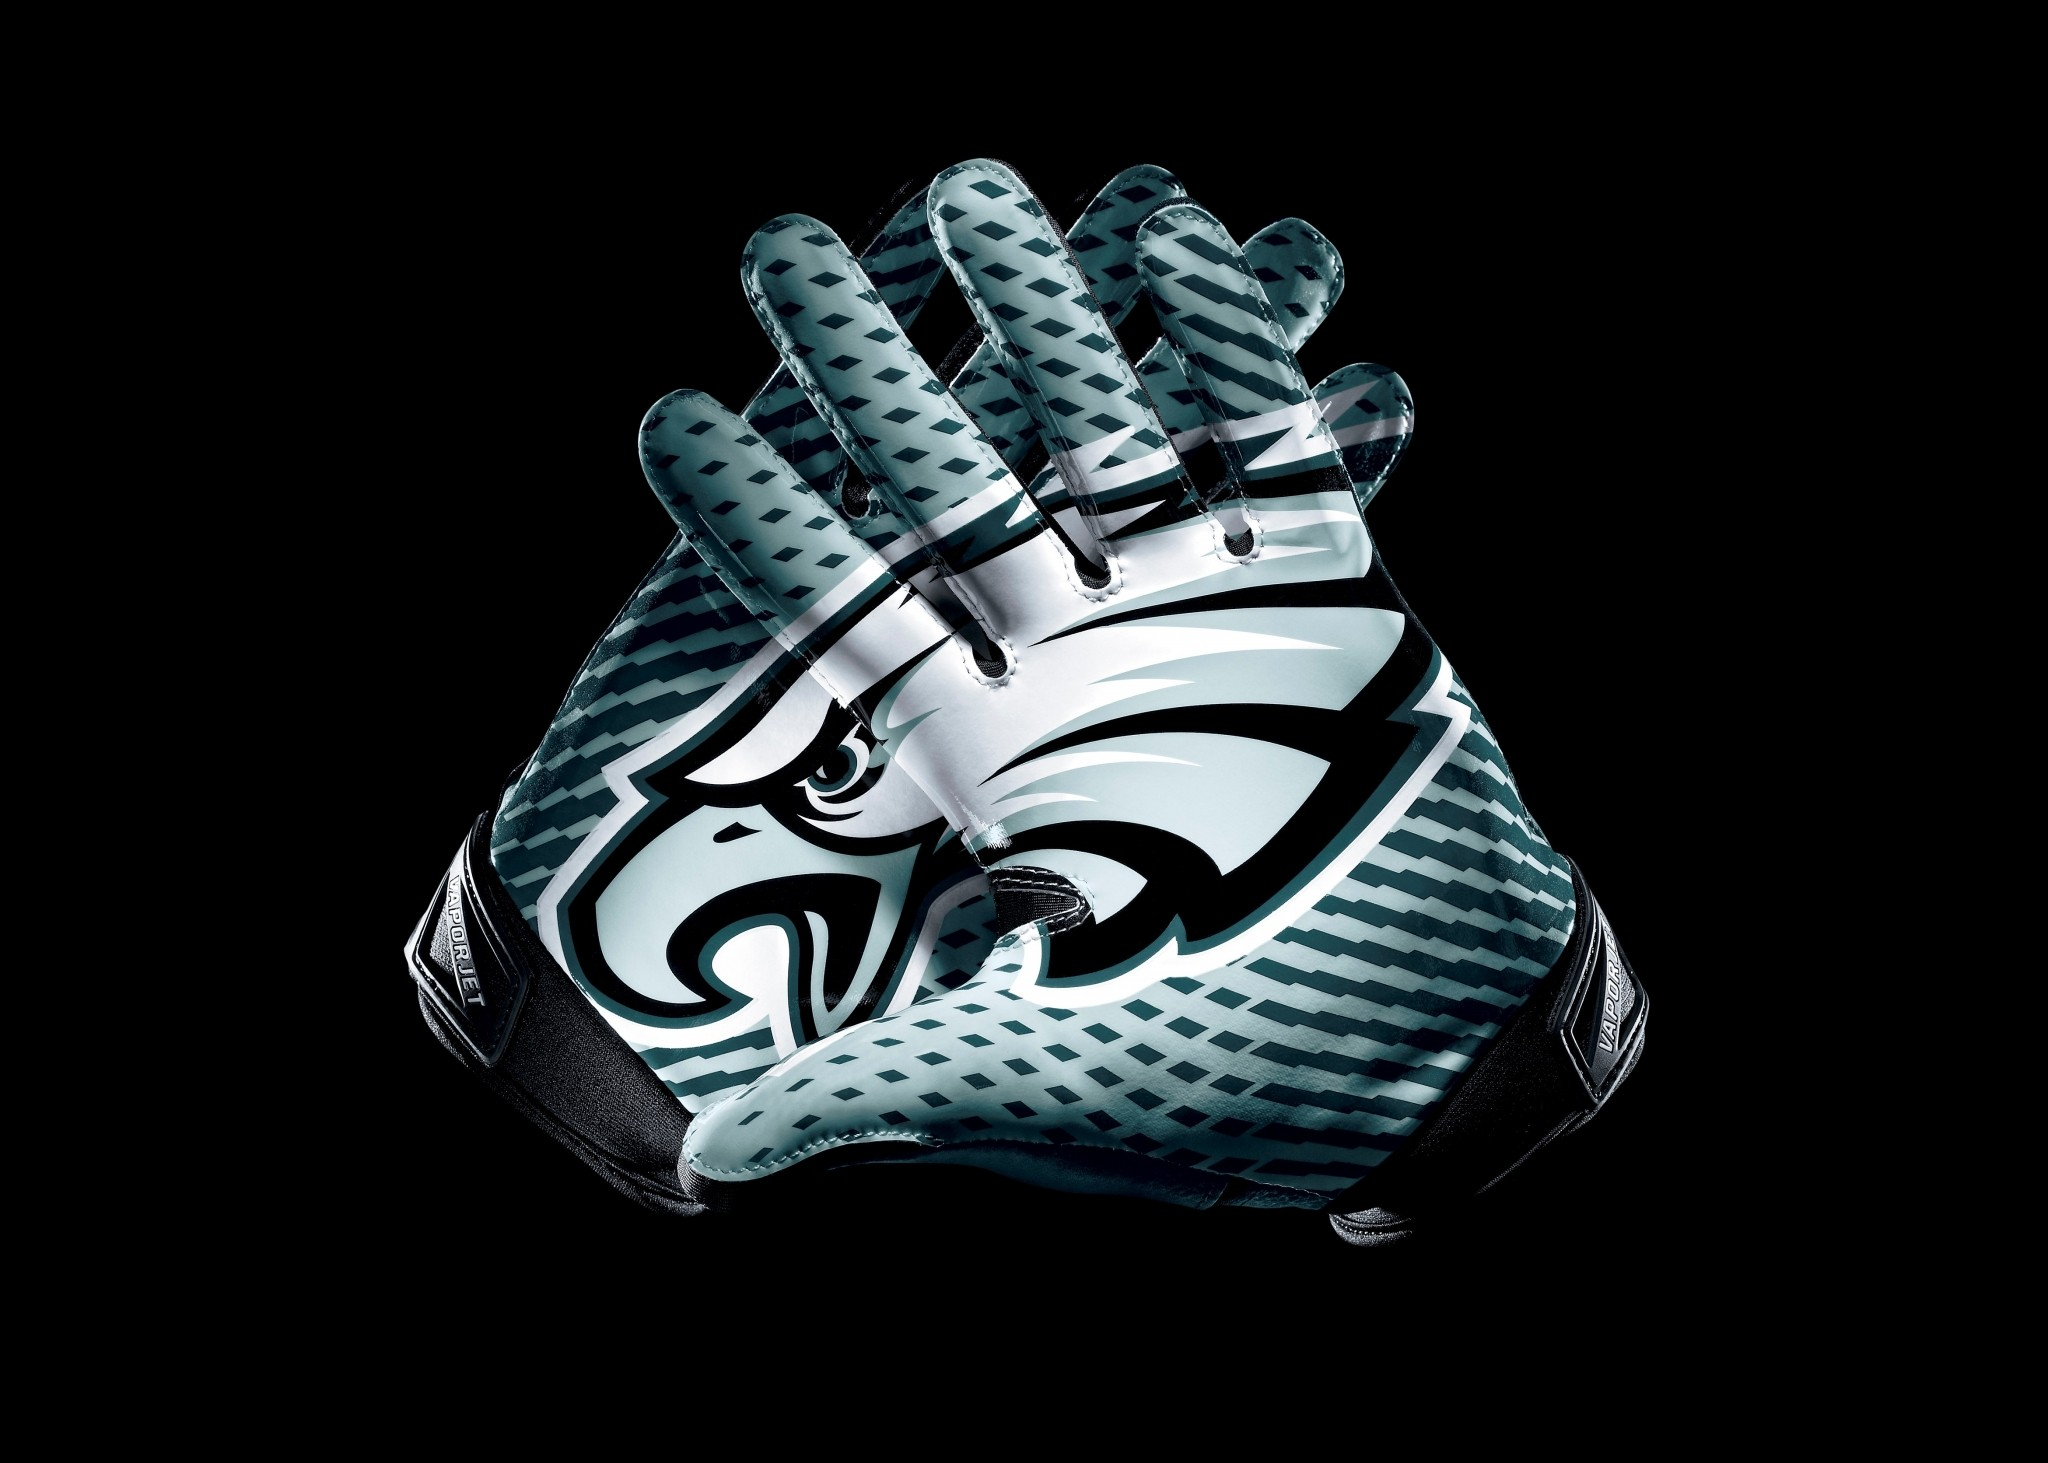 widescreen philadelphia eagles wallpaper 1920x1080 for meizu · 1920x1080 widescreen philadelphia eagles wallpaper ...